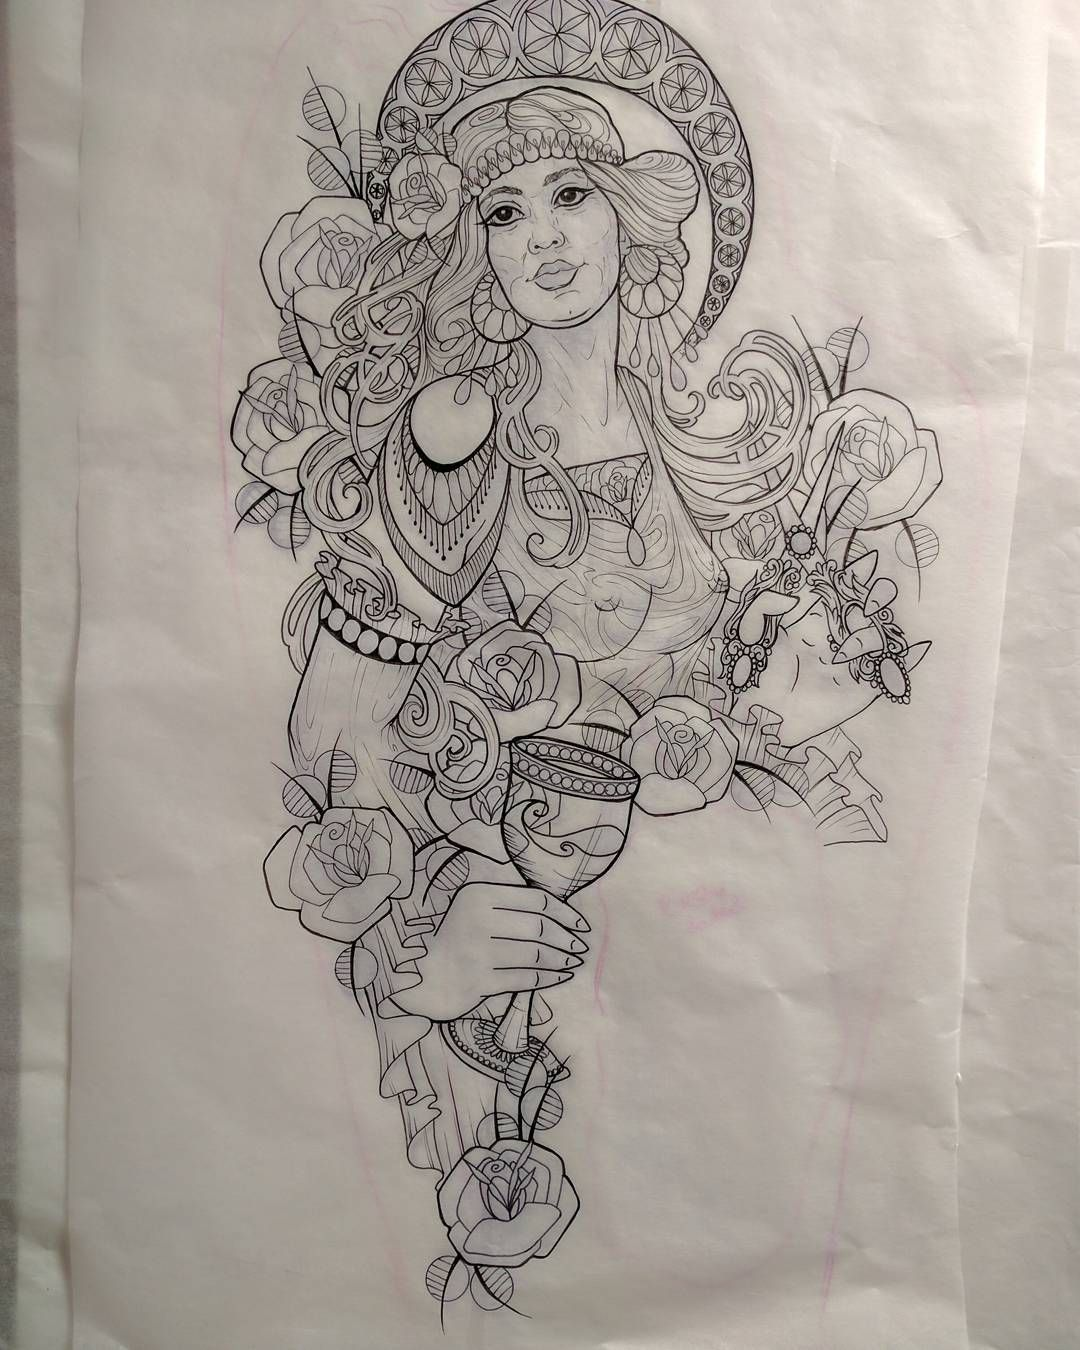 Pretty excited to tattoo this lady tomorrow! Might make a few adjustments here and there as I go along...